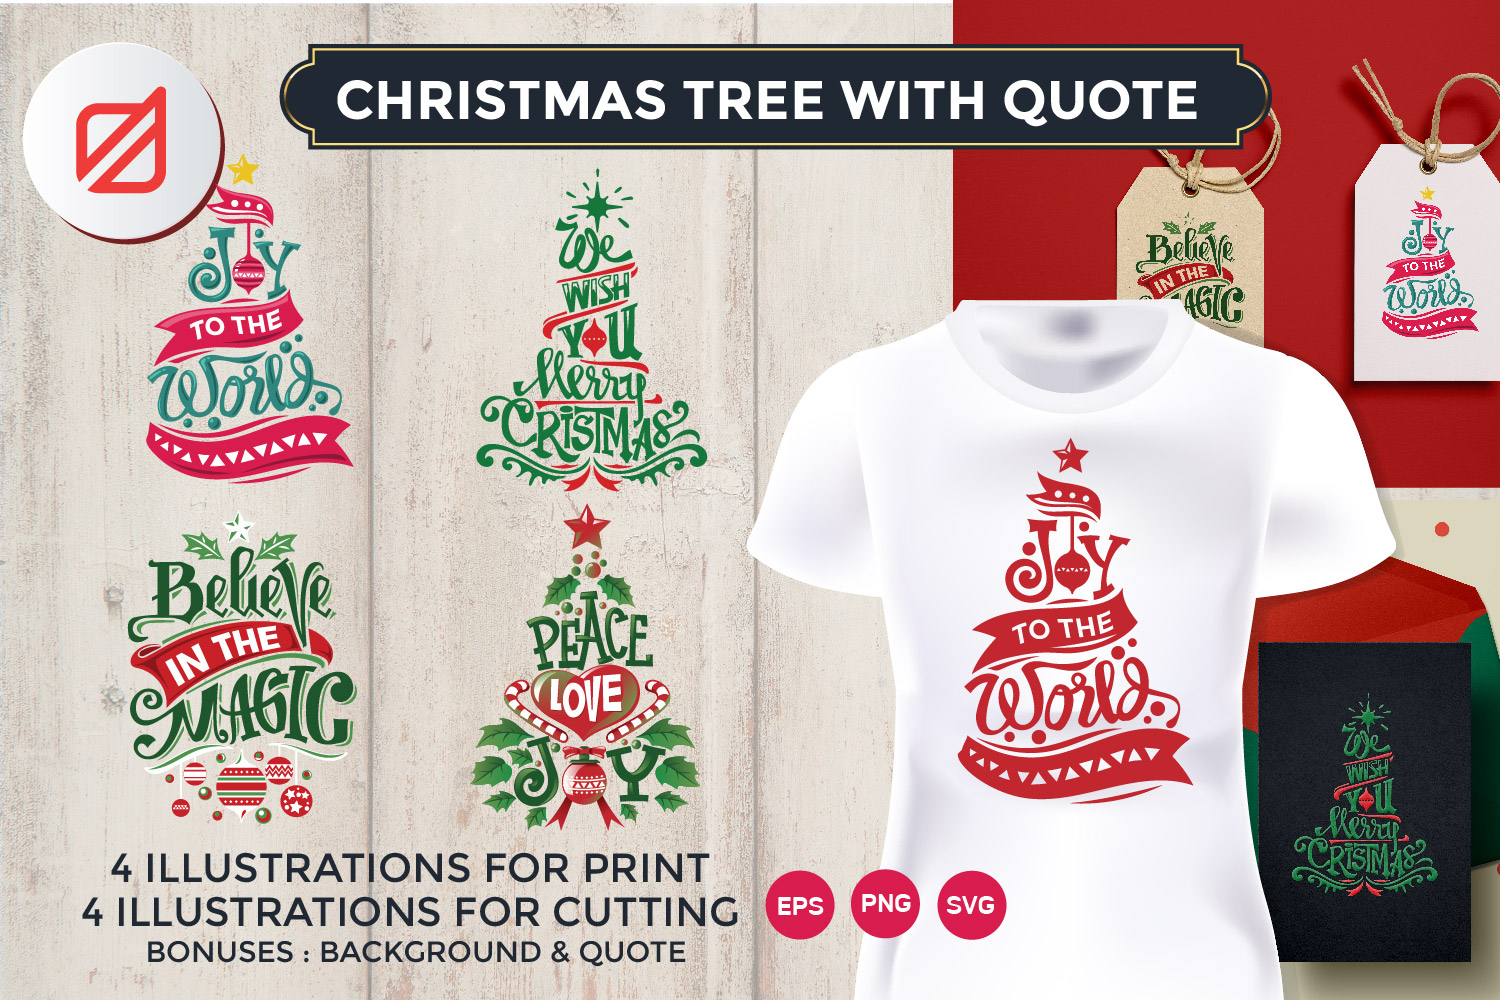 Christmas Tree with Quote Cutting File example image 1